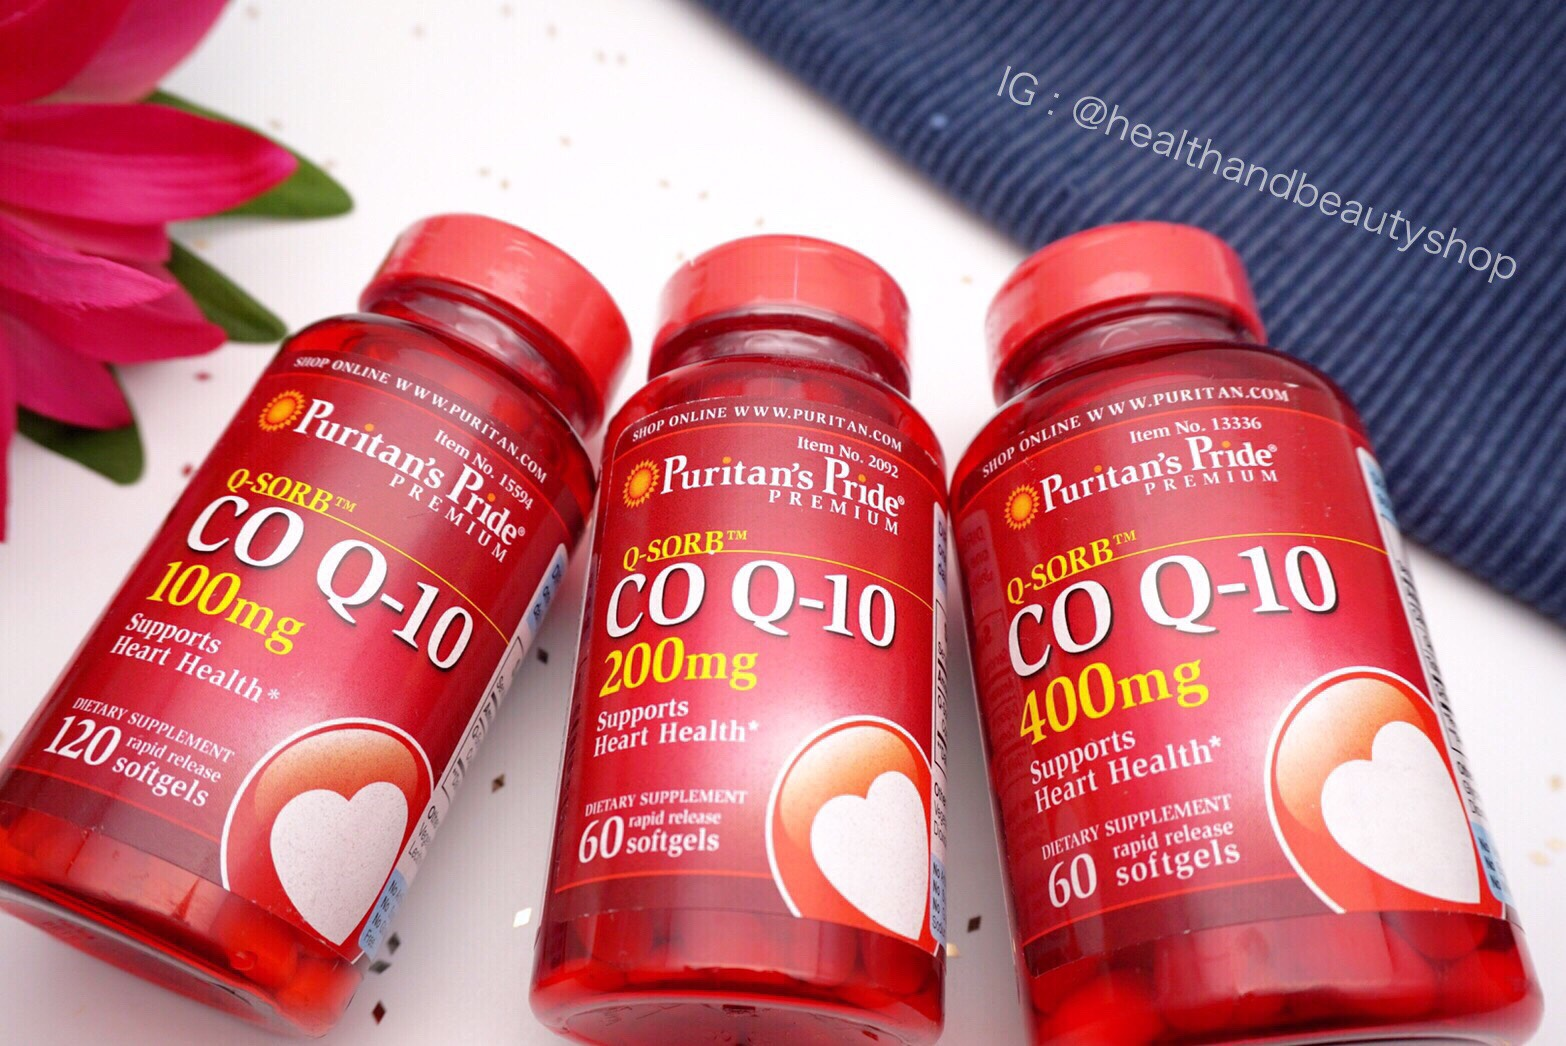 # คงความสาว # Puritan's Pride Co Q-10 200 mg Softgels